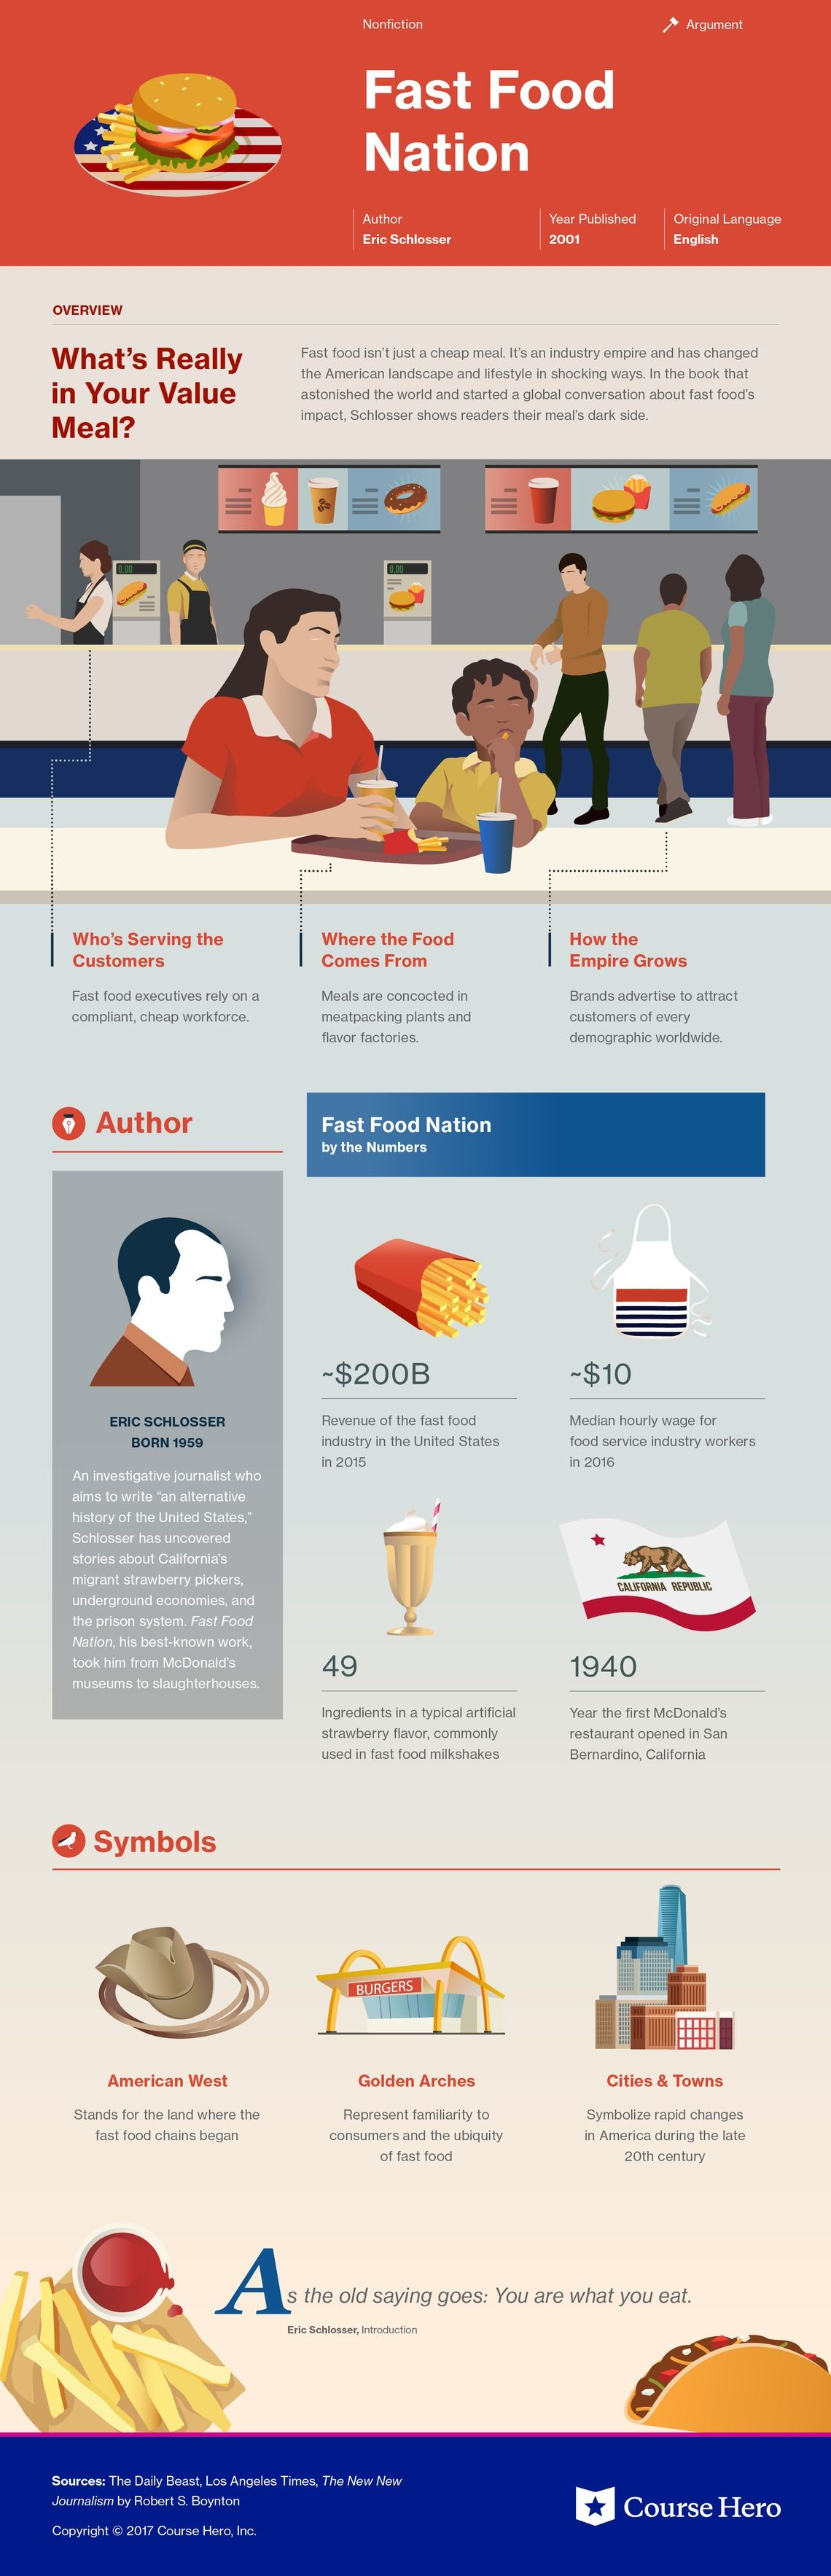 Fast Food Nation Study Guide With Images